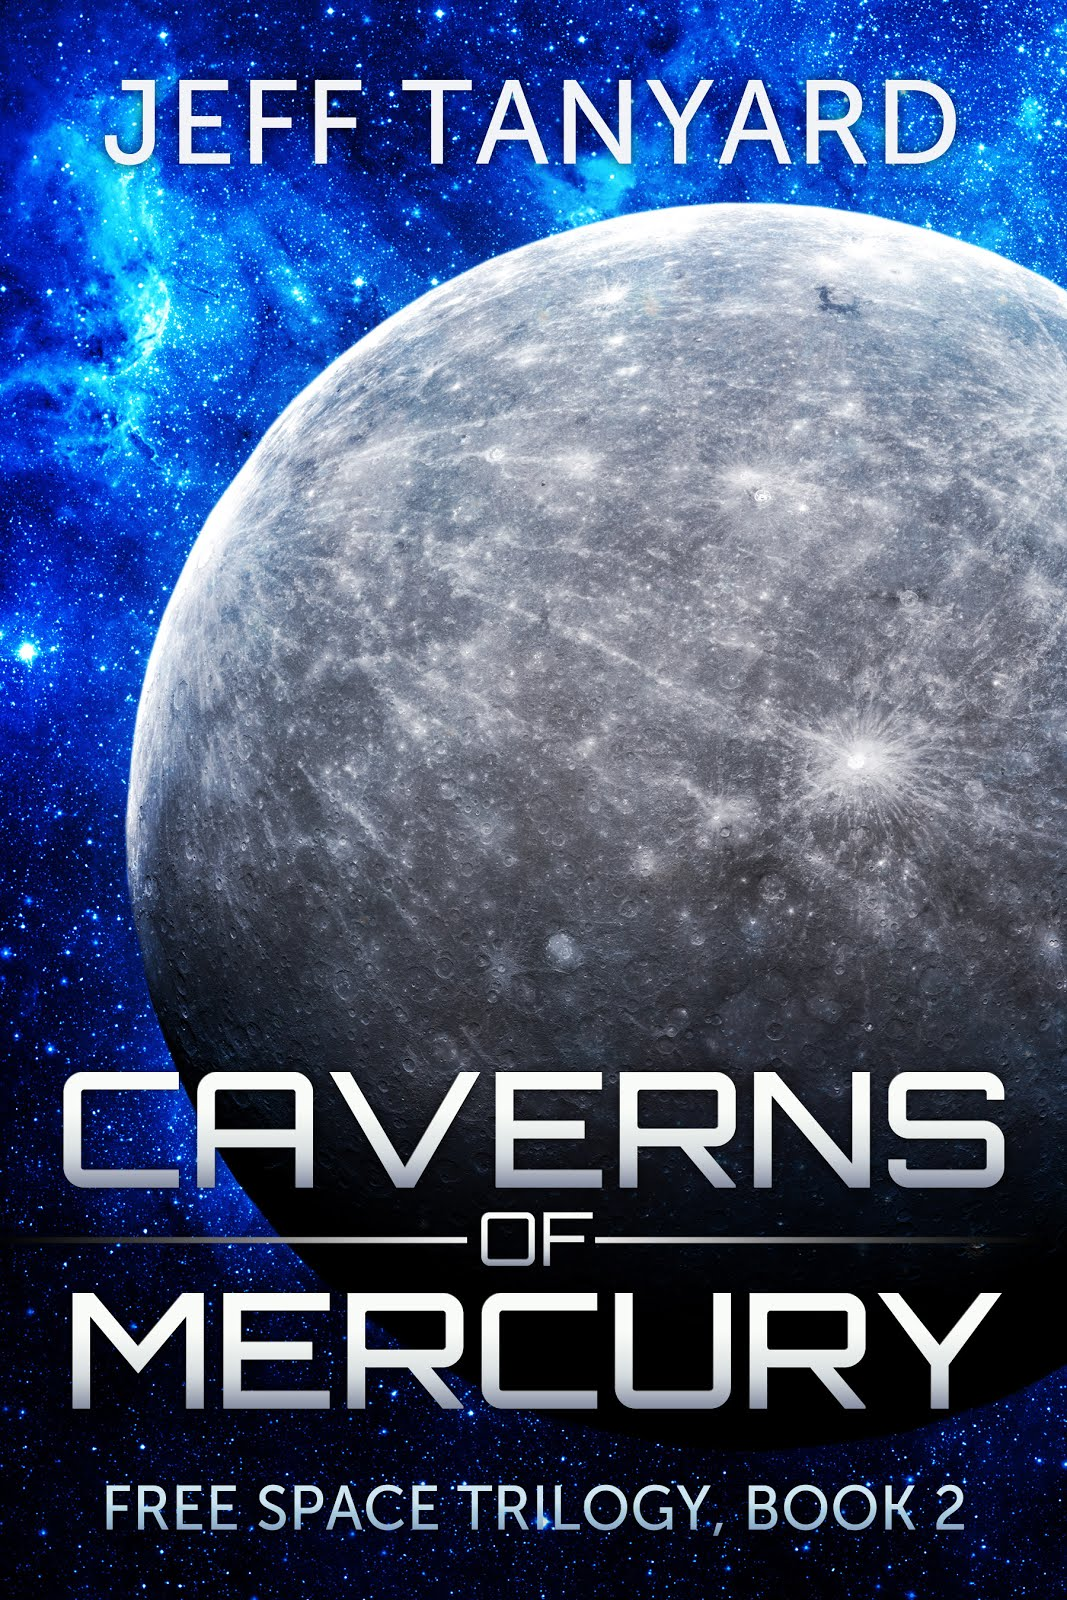 Caverns of Mercury